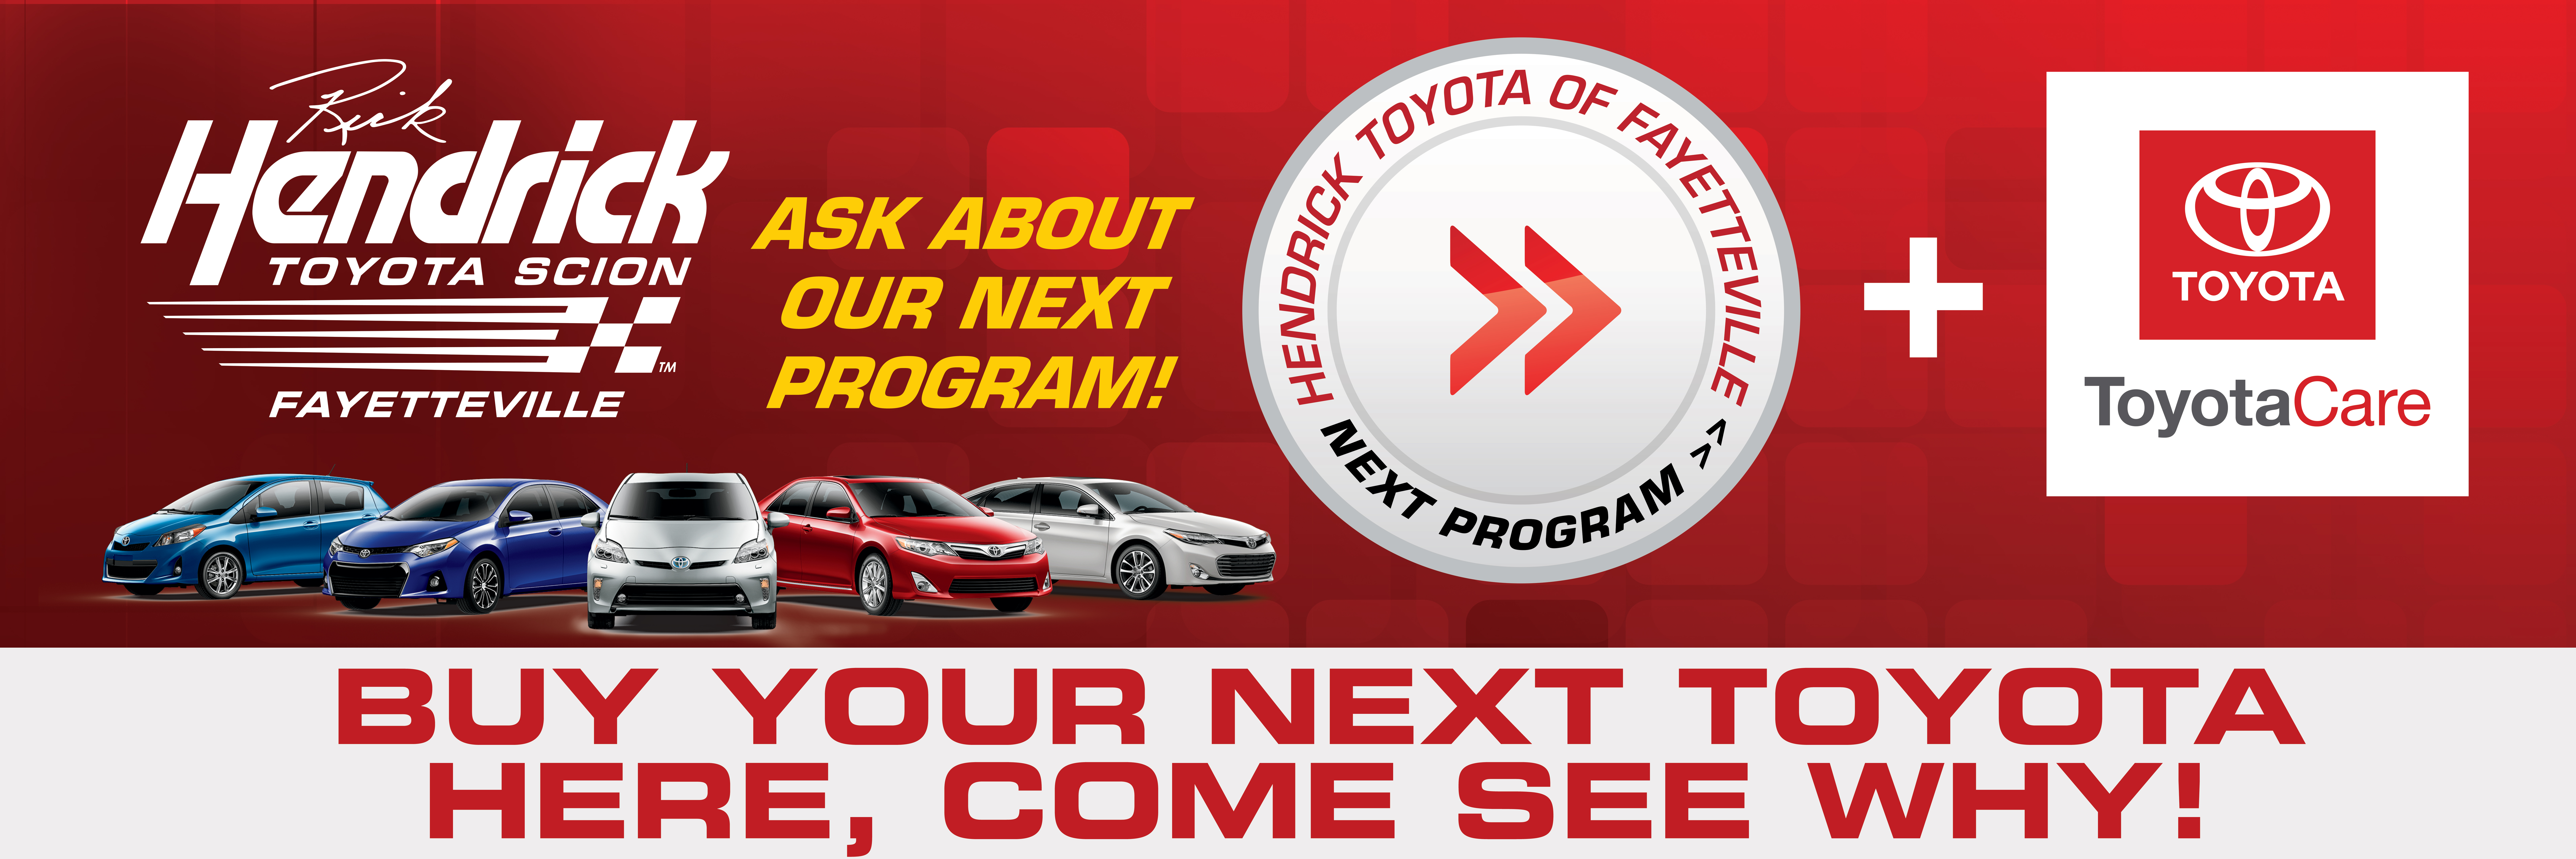 Toyota of nwa coupons i9 sports coupon for Mercedes benz loyalty discount